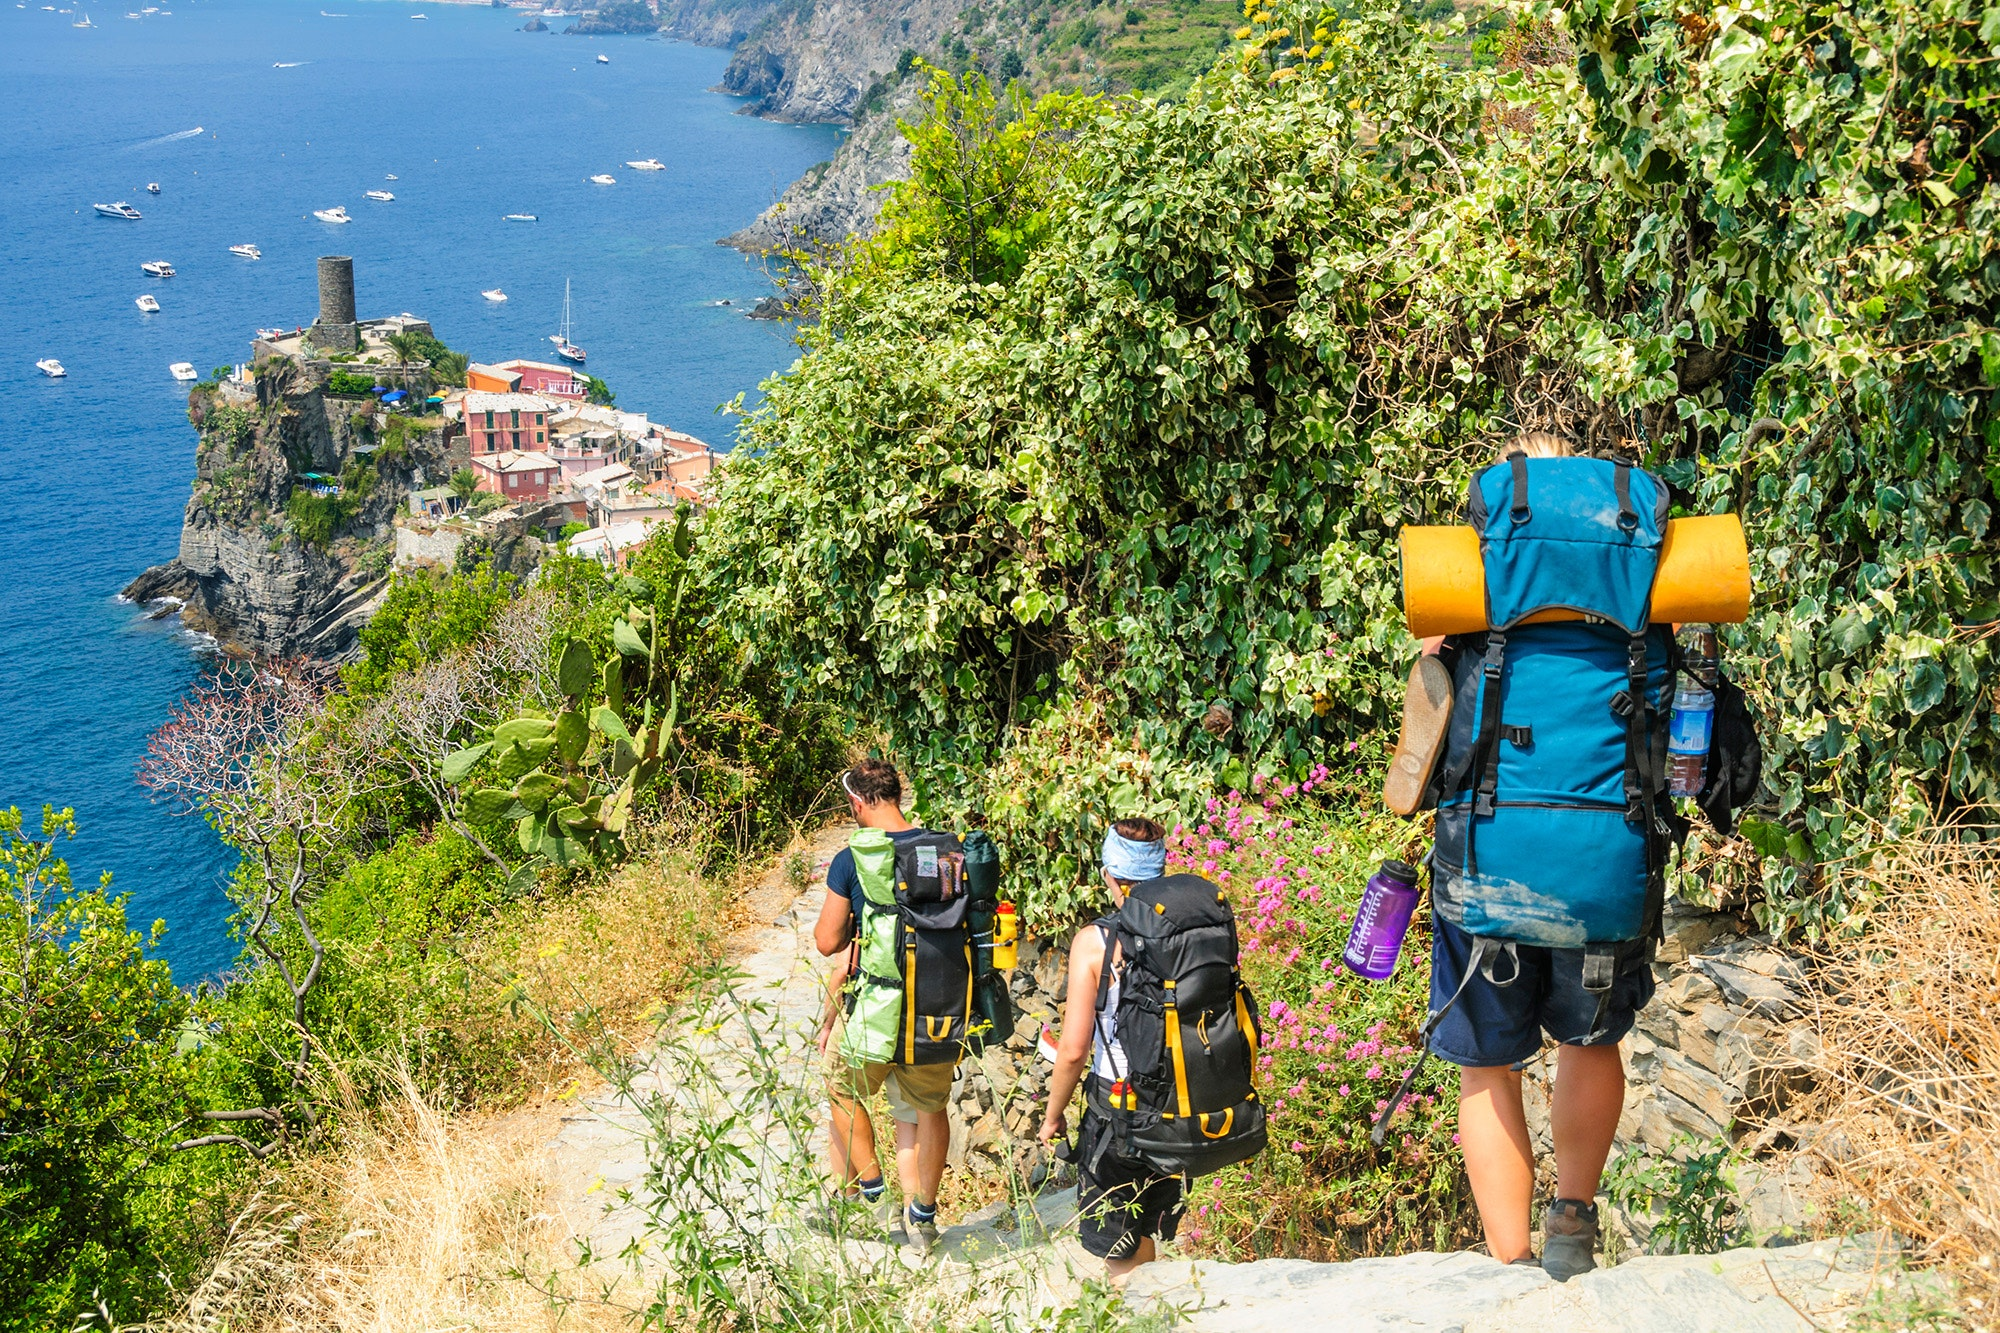 Hiking the Cinque Terre trails doesn't require backpacks, but you'll want a sturdy pair of walking shoes.